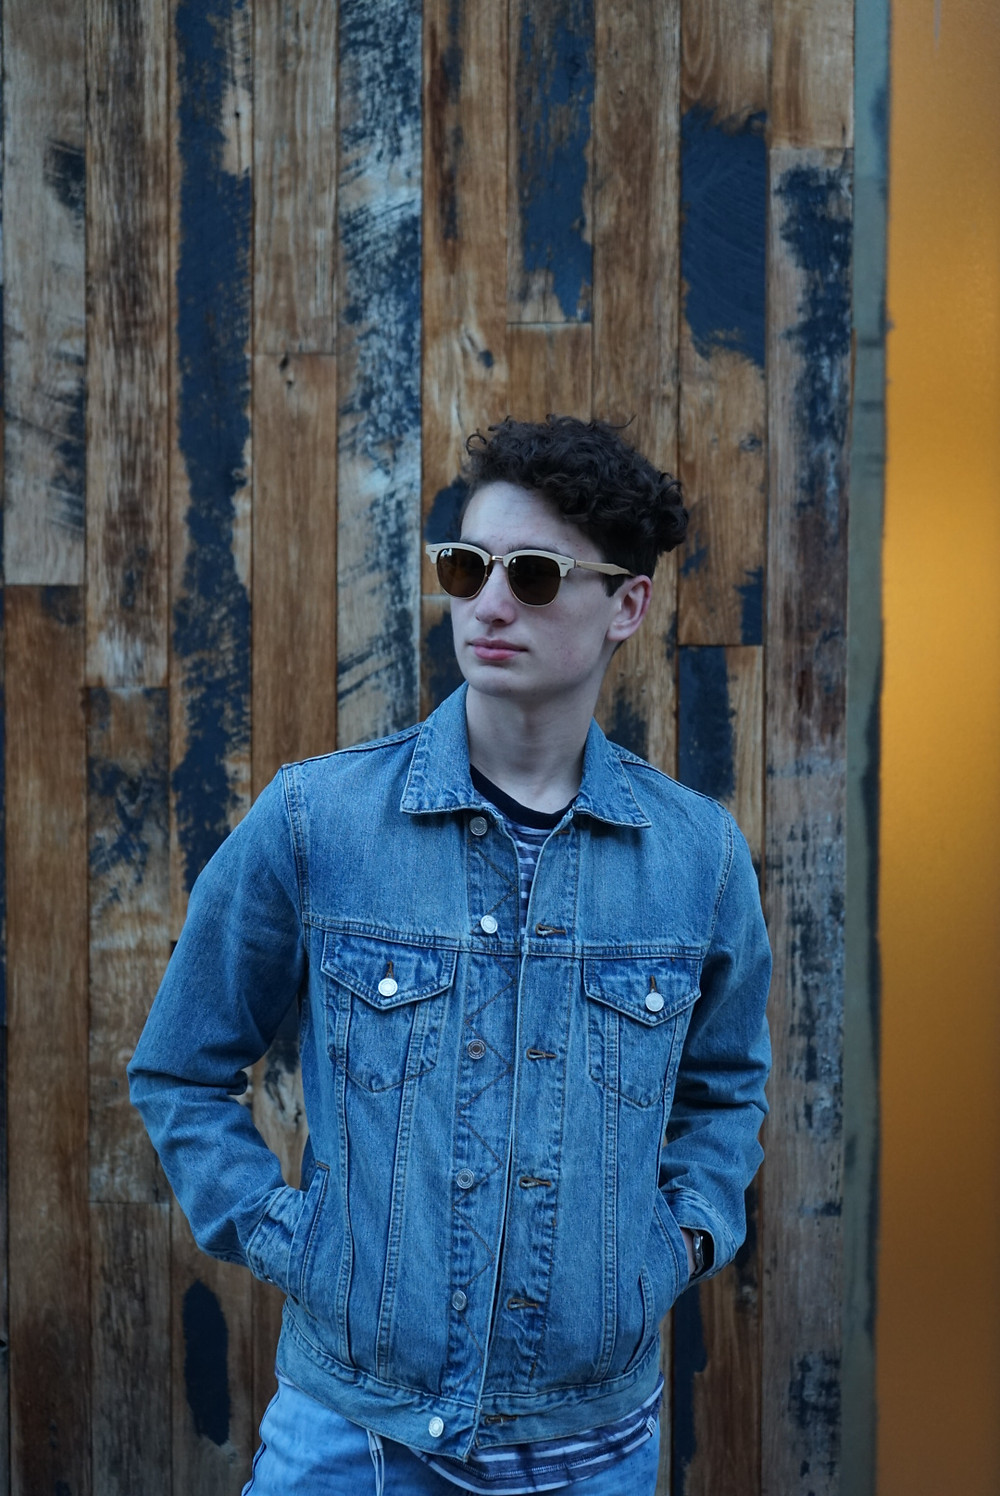 This is a portrait of Brandon Sağlam. In it, he wears a denim jacket, fully buttoned up. He has his hands in his pockets, and is staring off in the distance with shades. He's wearing a striped shirt under. The backdrop seems to be a wooden wall or fence.